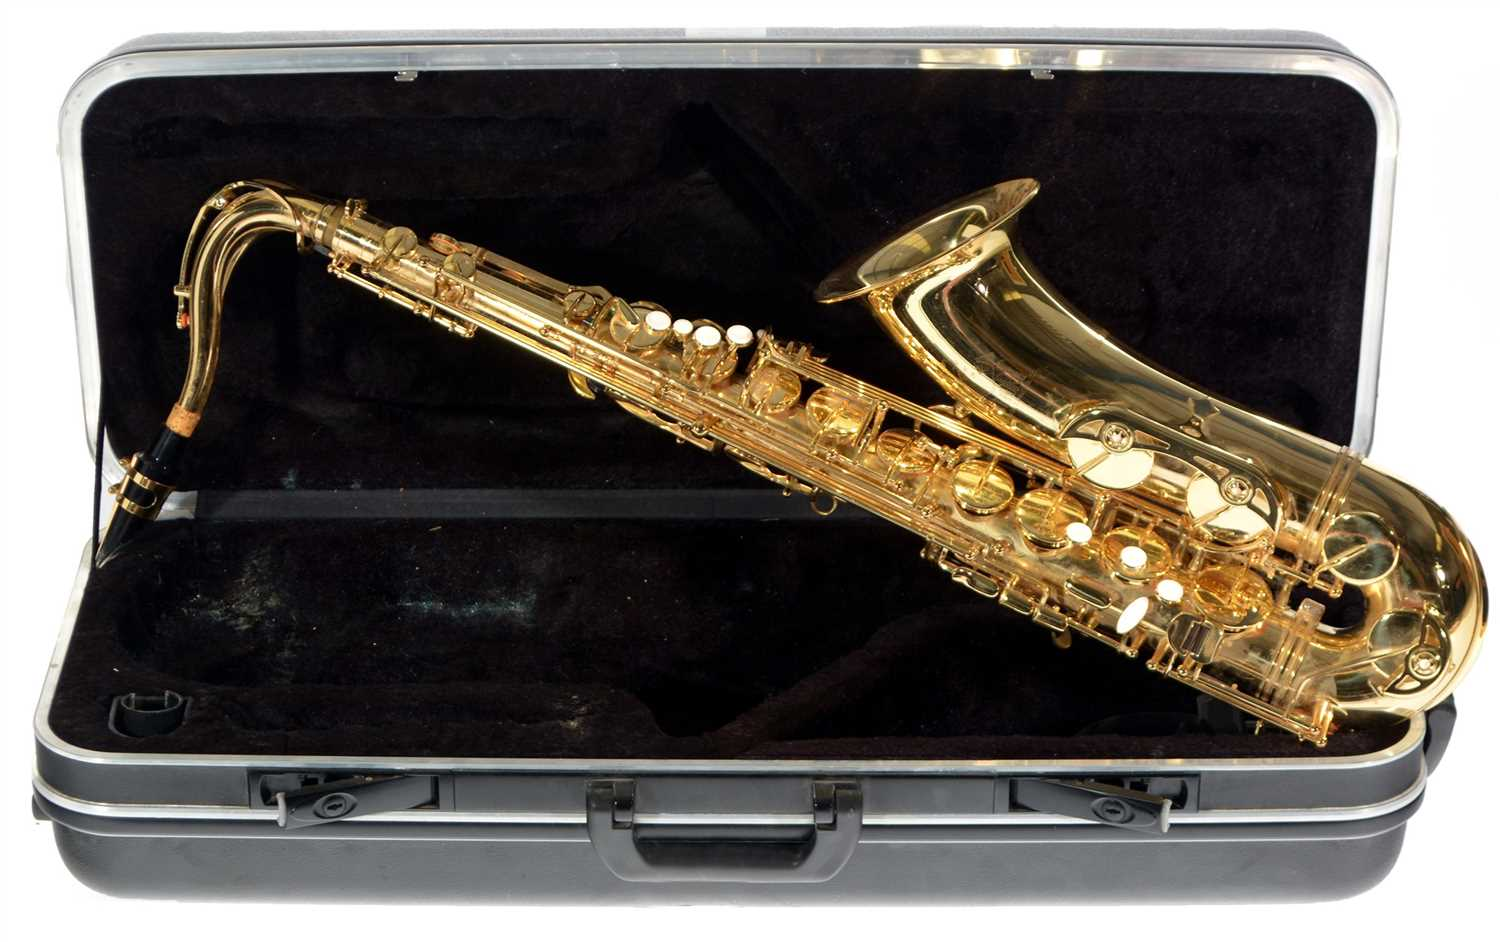 Lot 3-Trevor James Revolution II Tenor Saxophone